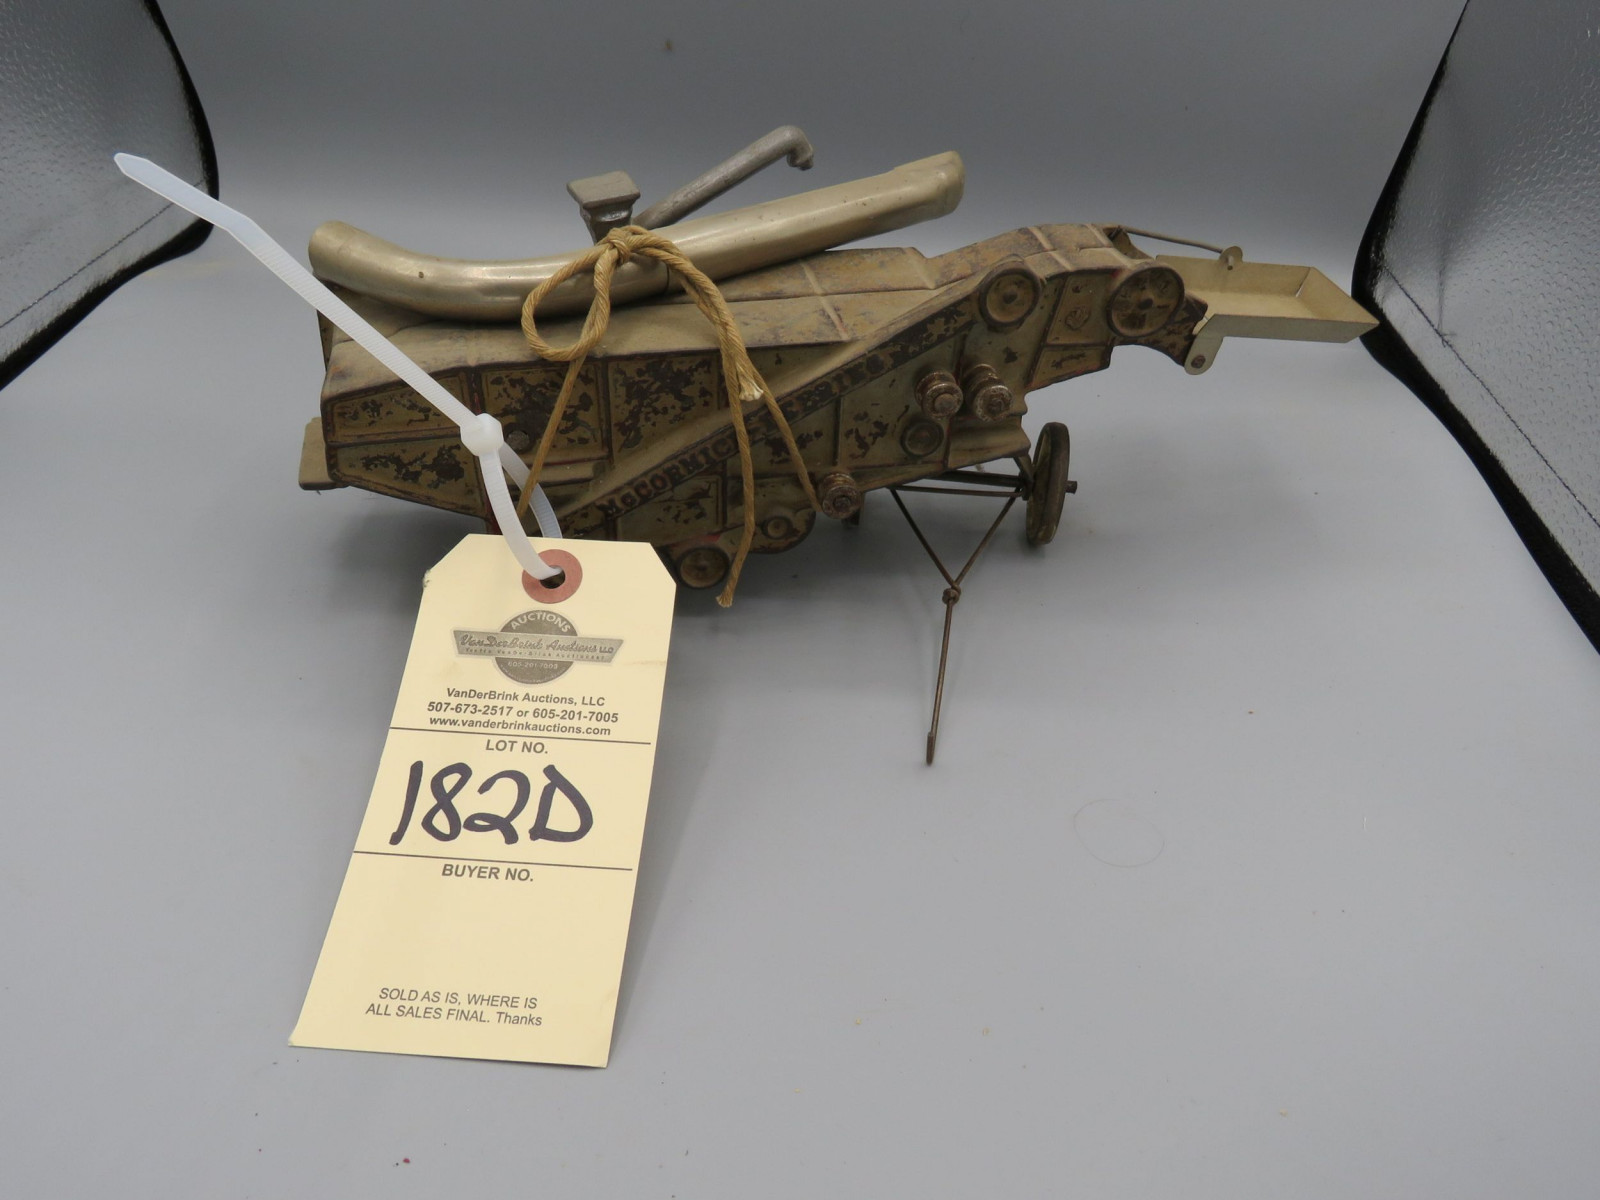 Arcade Cast Iron McCormick Threshing Machine @1927 Approx. 12 inches - Image 1